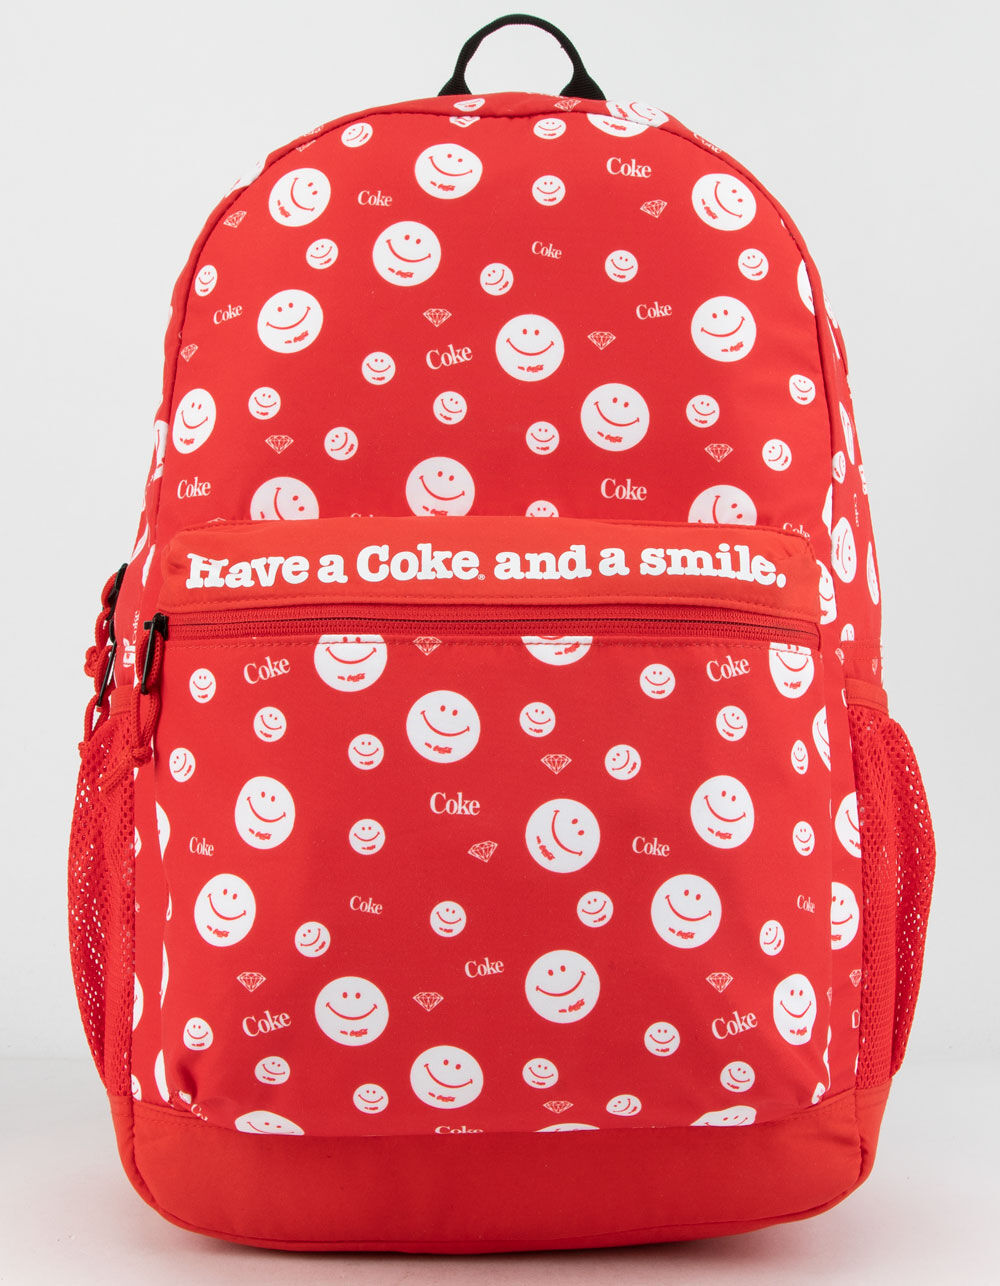 DIAMOND SUPPLY CO. x Coca-Cola Smiley Red Backpack